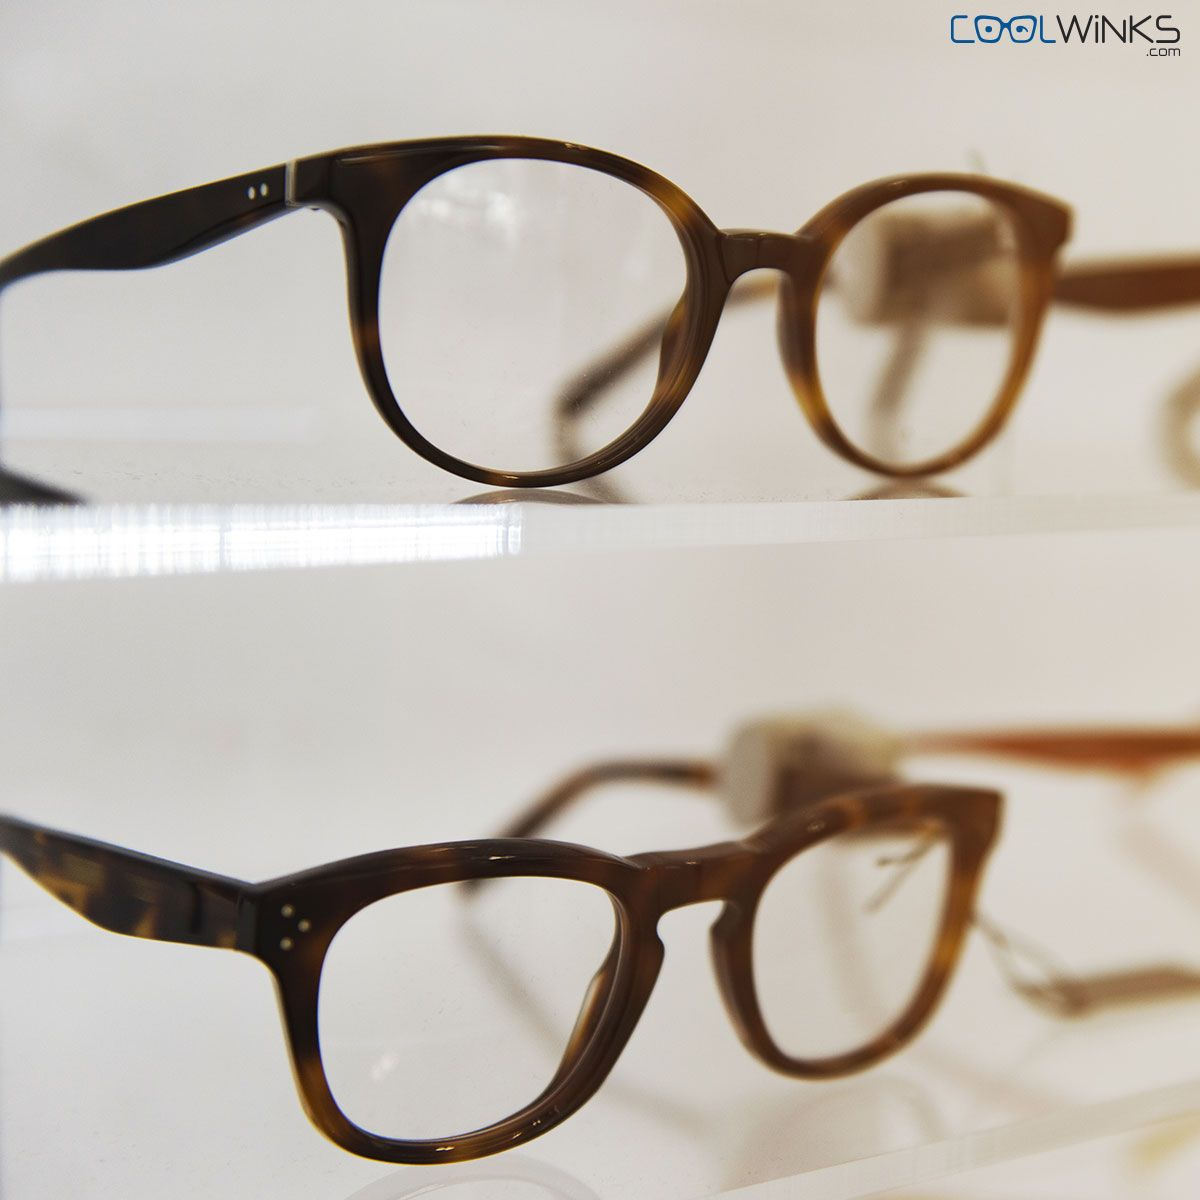 97d970f628 Take Care of Your Eyes! UPTO 99% OFF on Eyeglass Frames